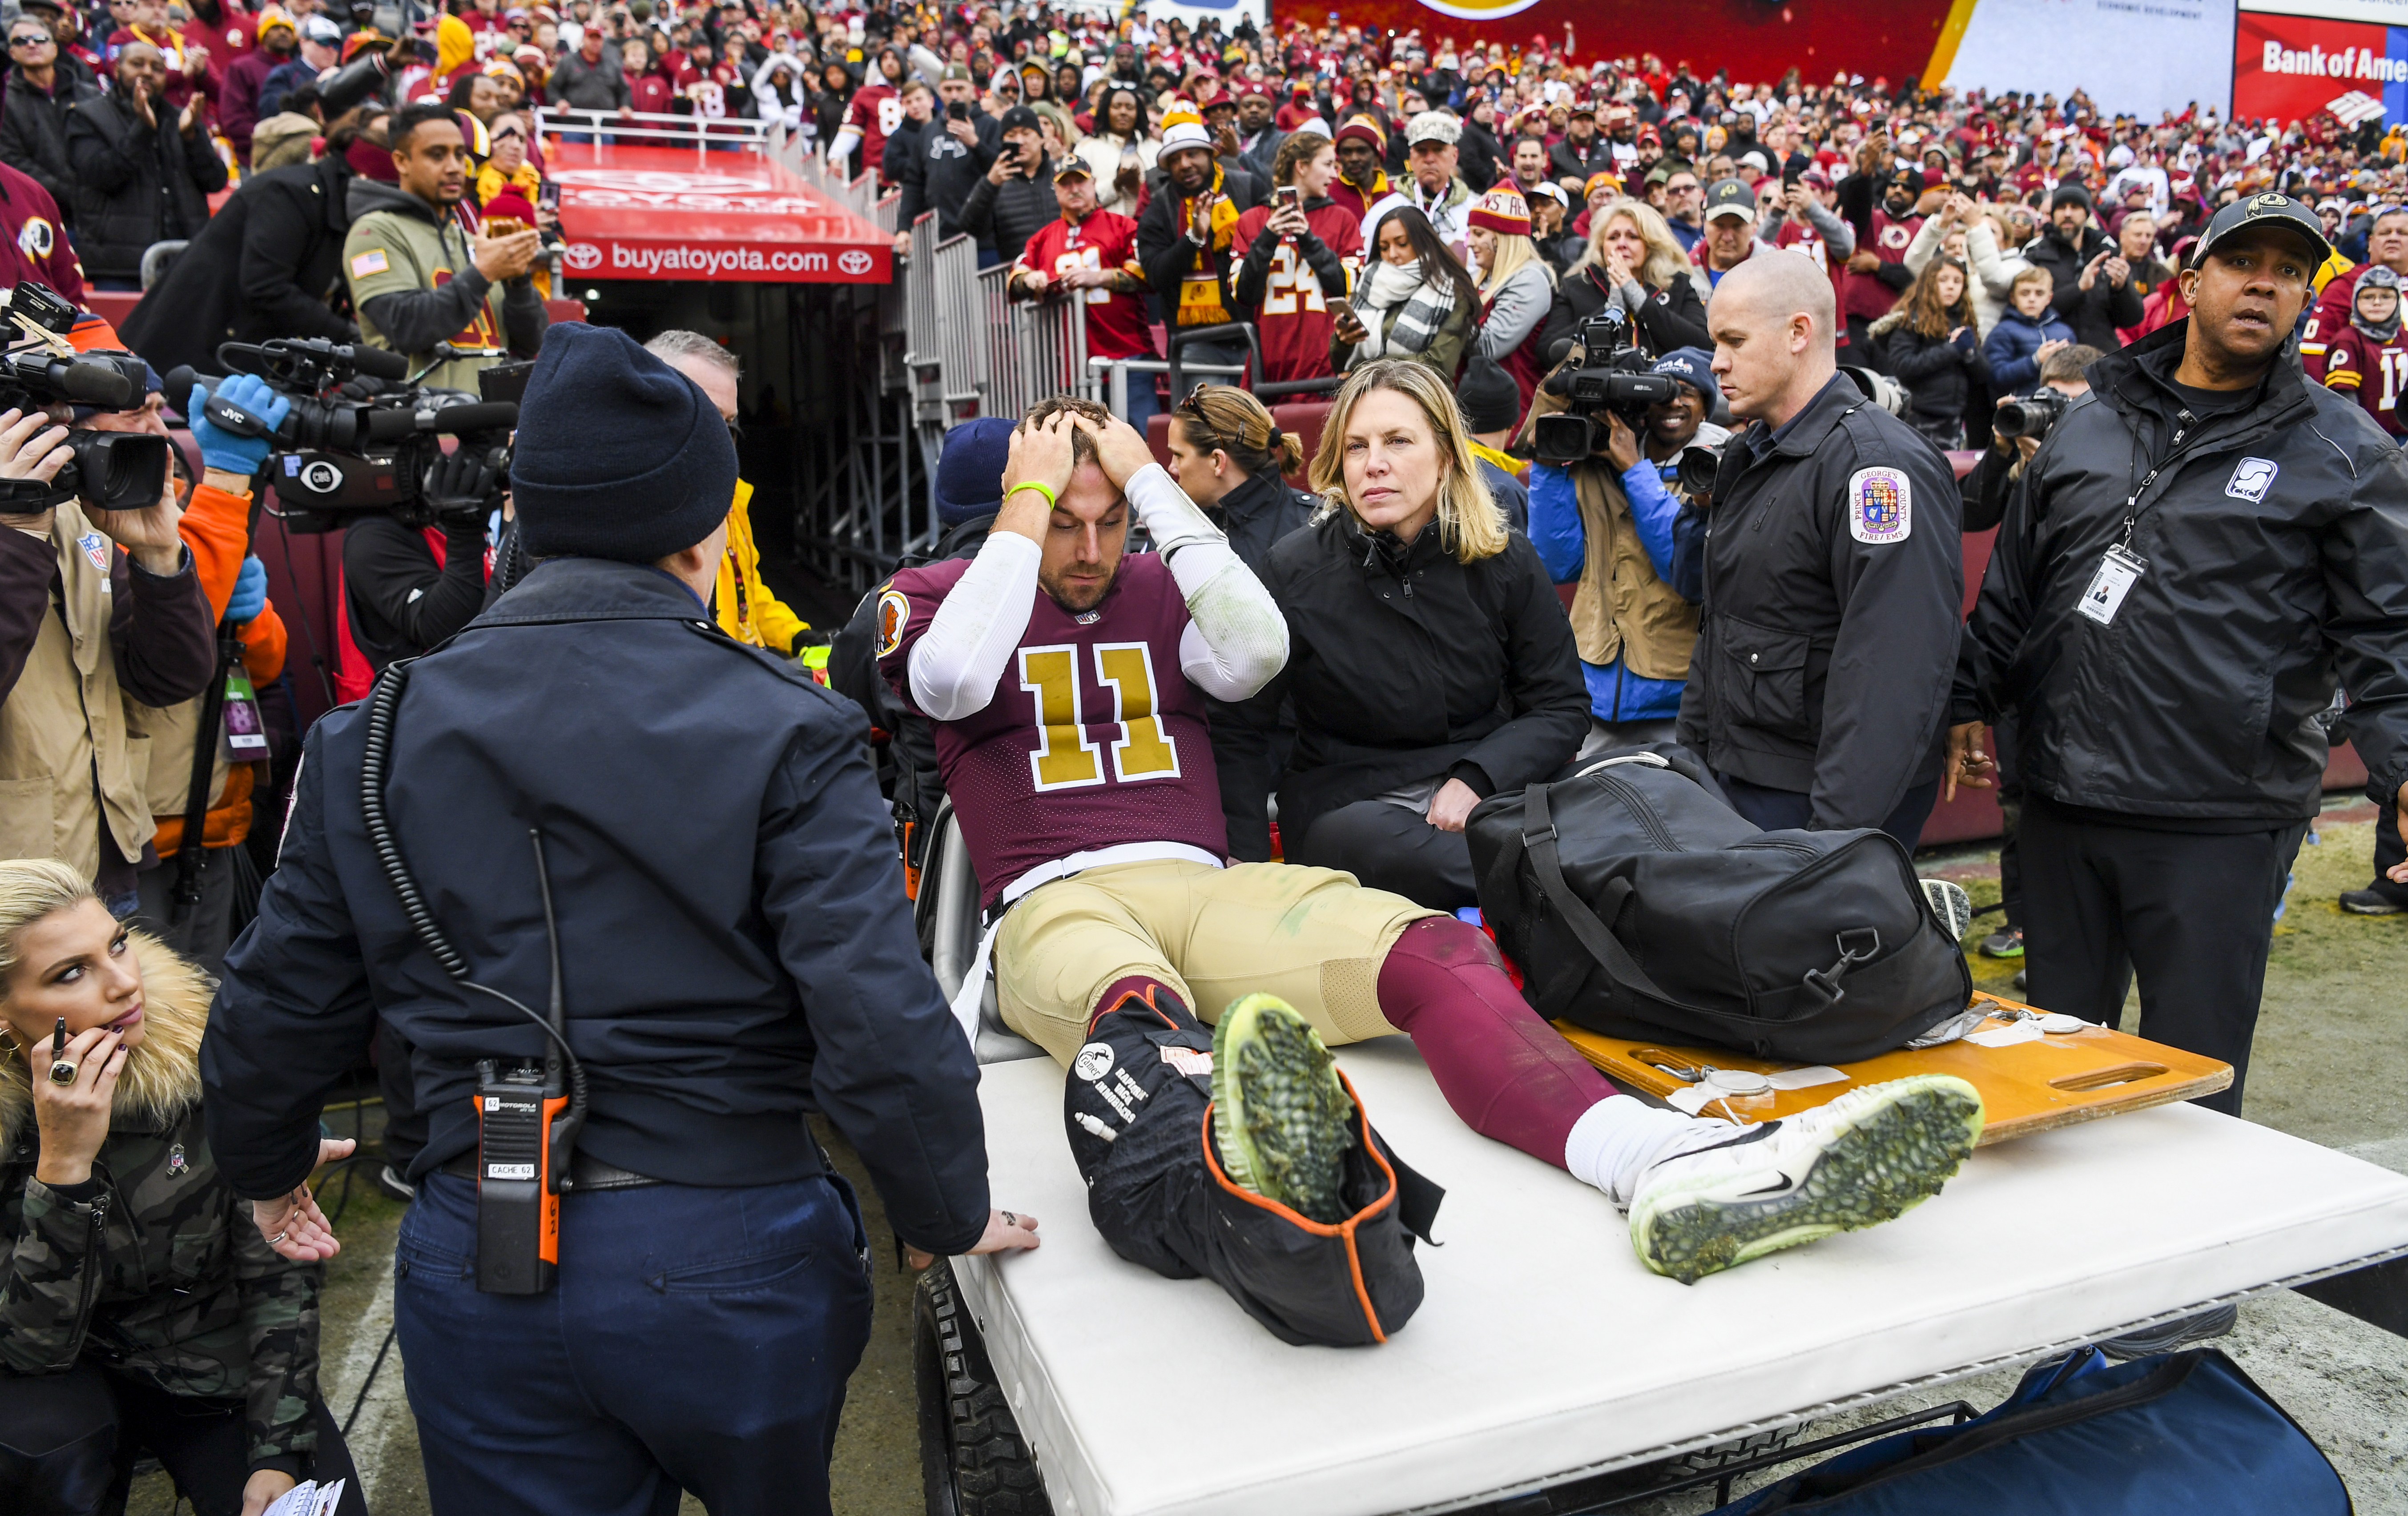 Alex Smith S Physician Is Confident He Can Play Football Again The Washington Post